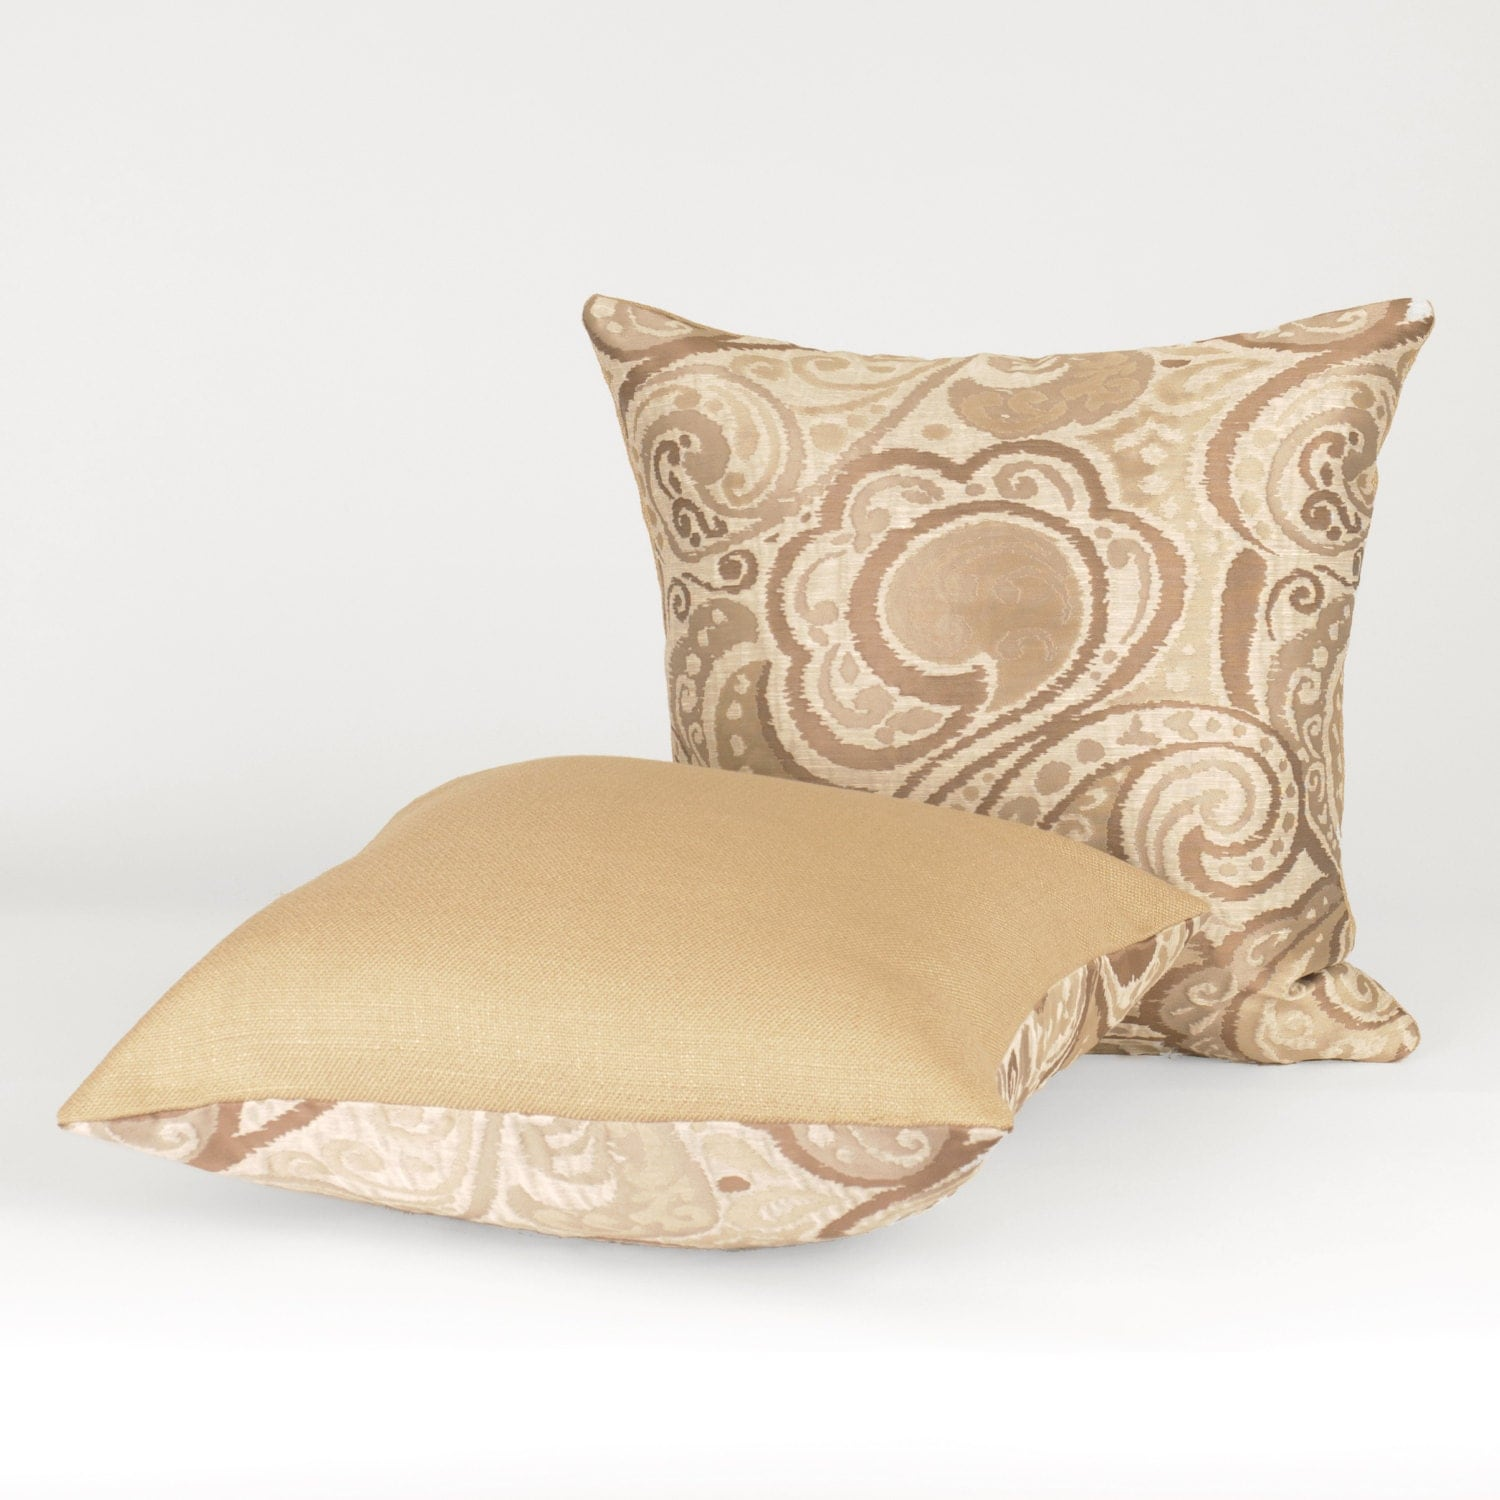 Throw Pillows Taupe : Shades of Taupe Square Throw Pillow with Insert 18 x by Fabrinique